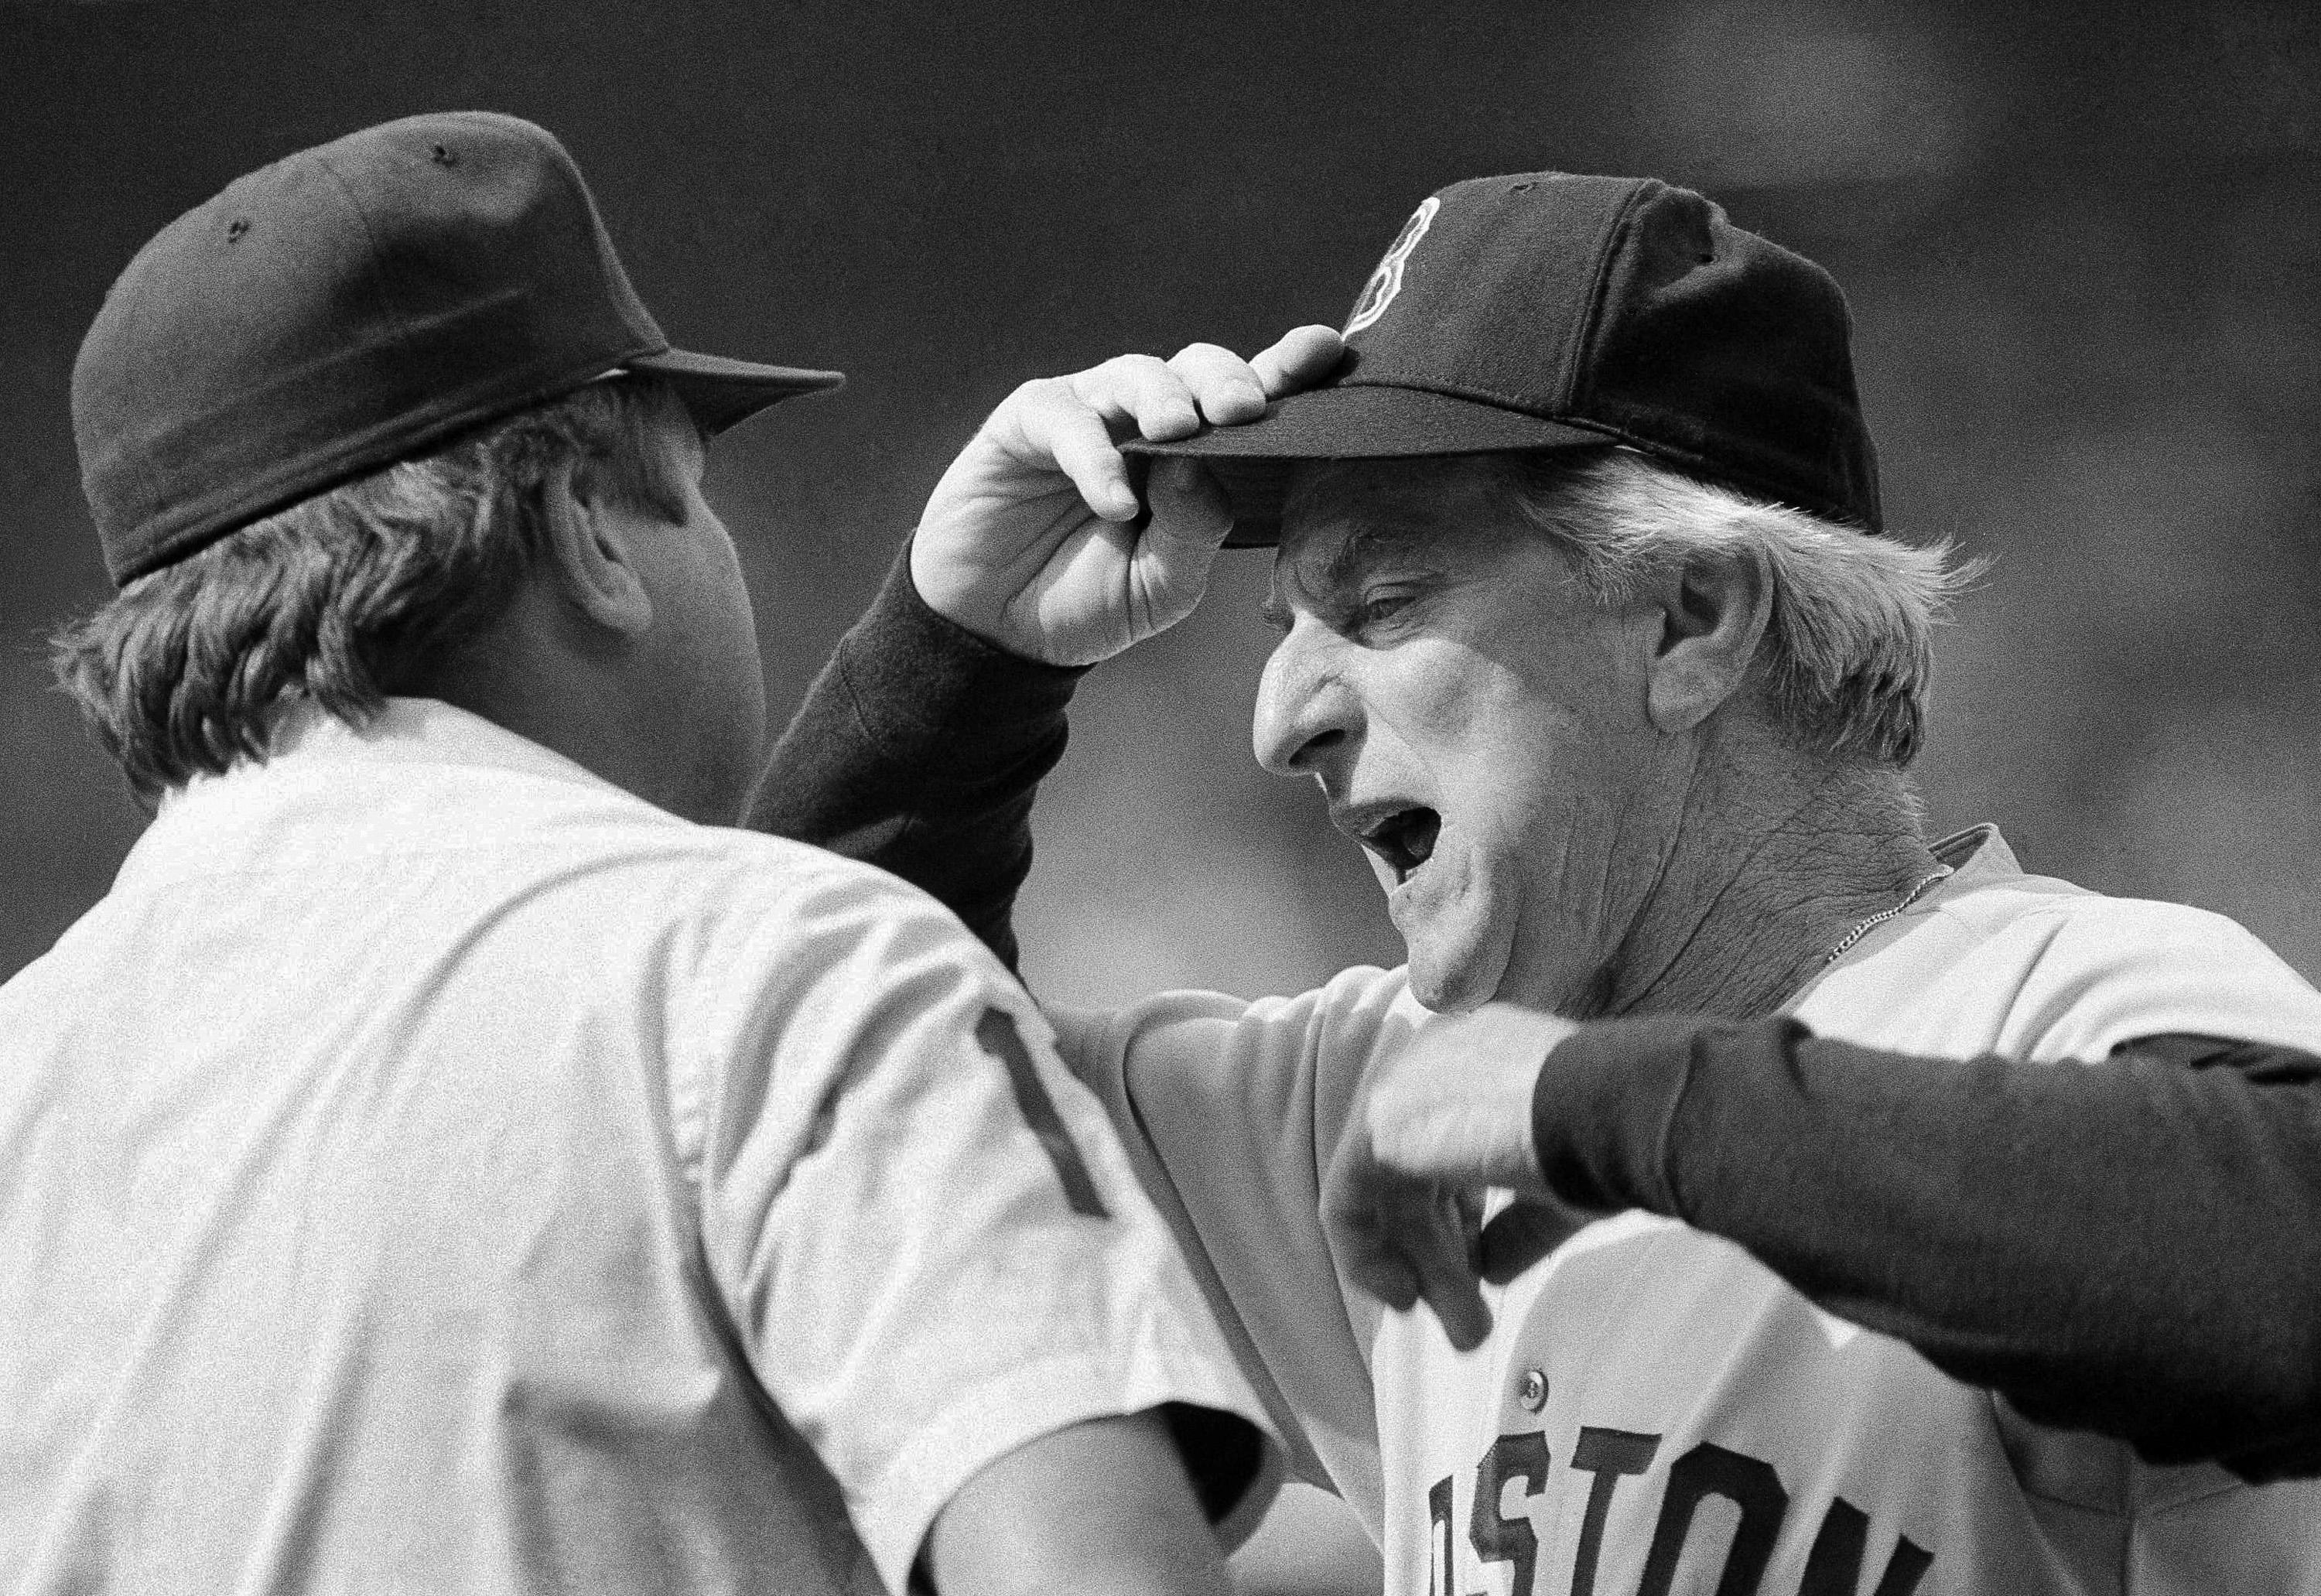 FILE - In this April 19, 1985, file photo, Boston Red Sox manager John McNamara, right, argues with first base umpire Derryl Cousins during a baseball game against the Chicago White Sox at Comiskey Park in Chicago. McNamara, who managed several Major League Baseball teams during his career, died Tuesday, July 28, 2020, in Tennessee. He was 88. (AP Photo/Fred Jewell, File)